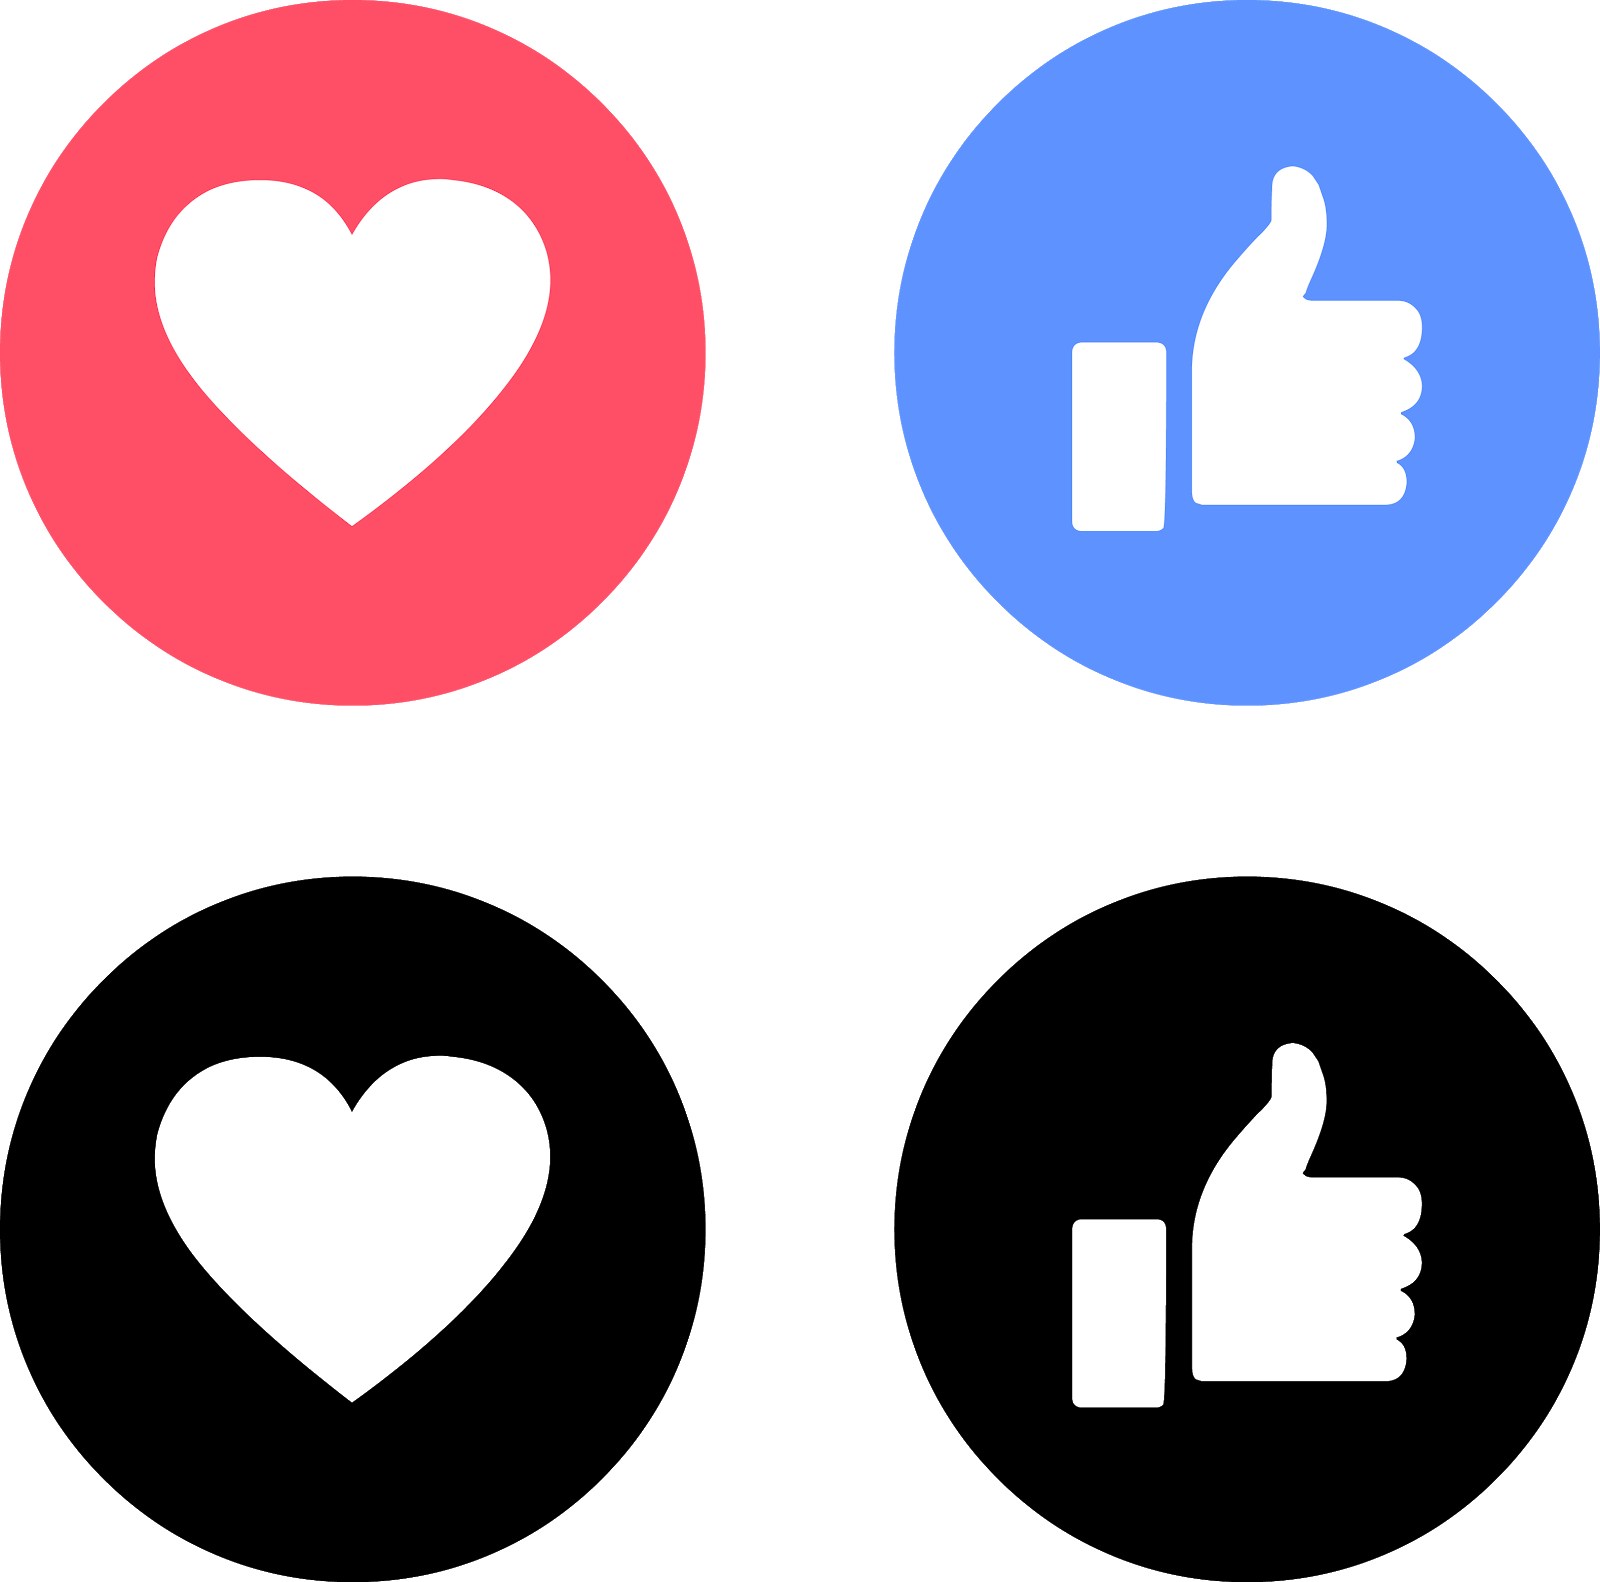 Download Like Love Facebook Icons Svg Eps Png Psd Ai El